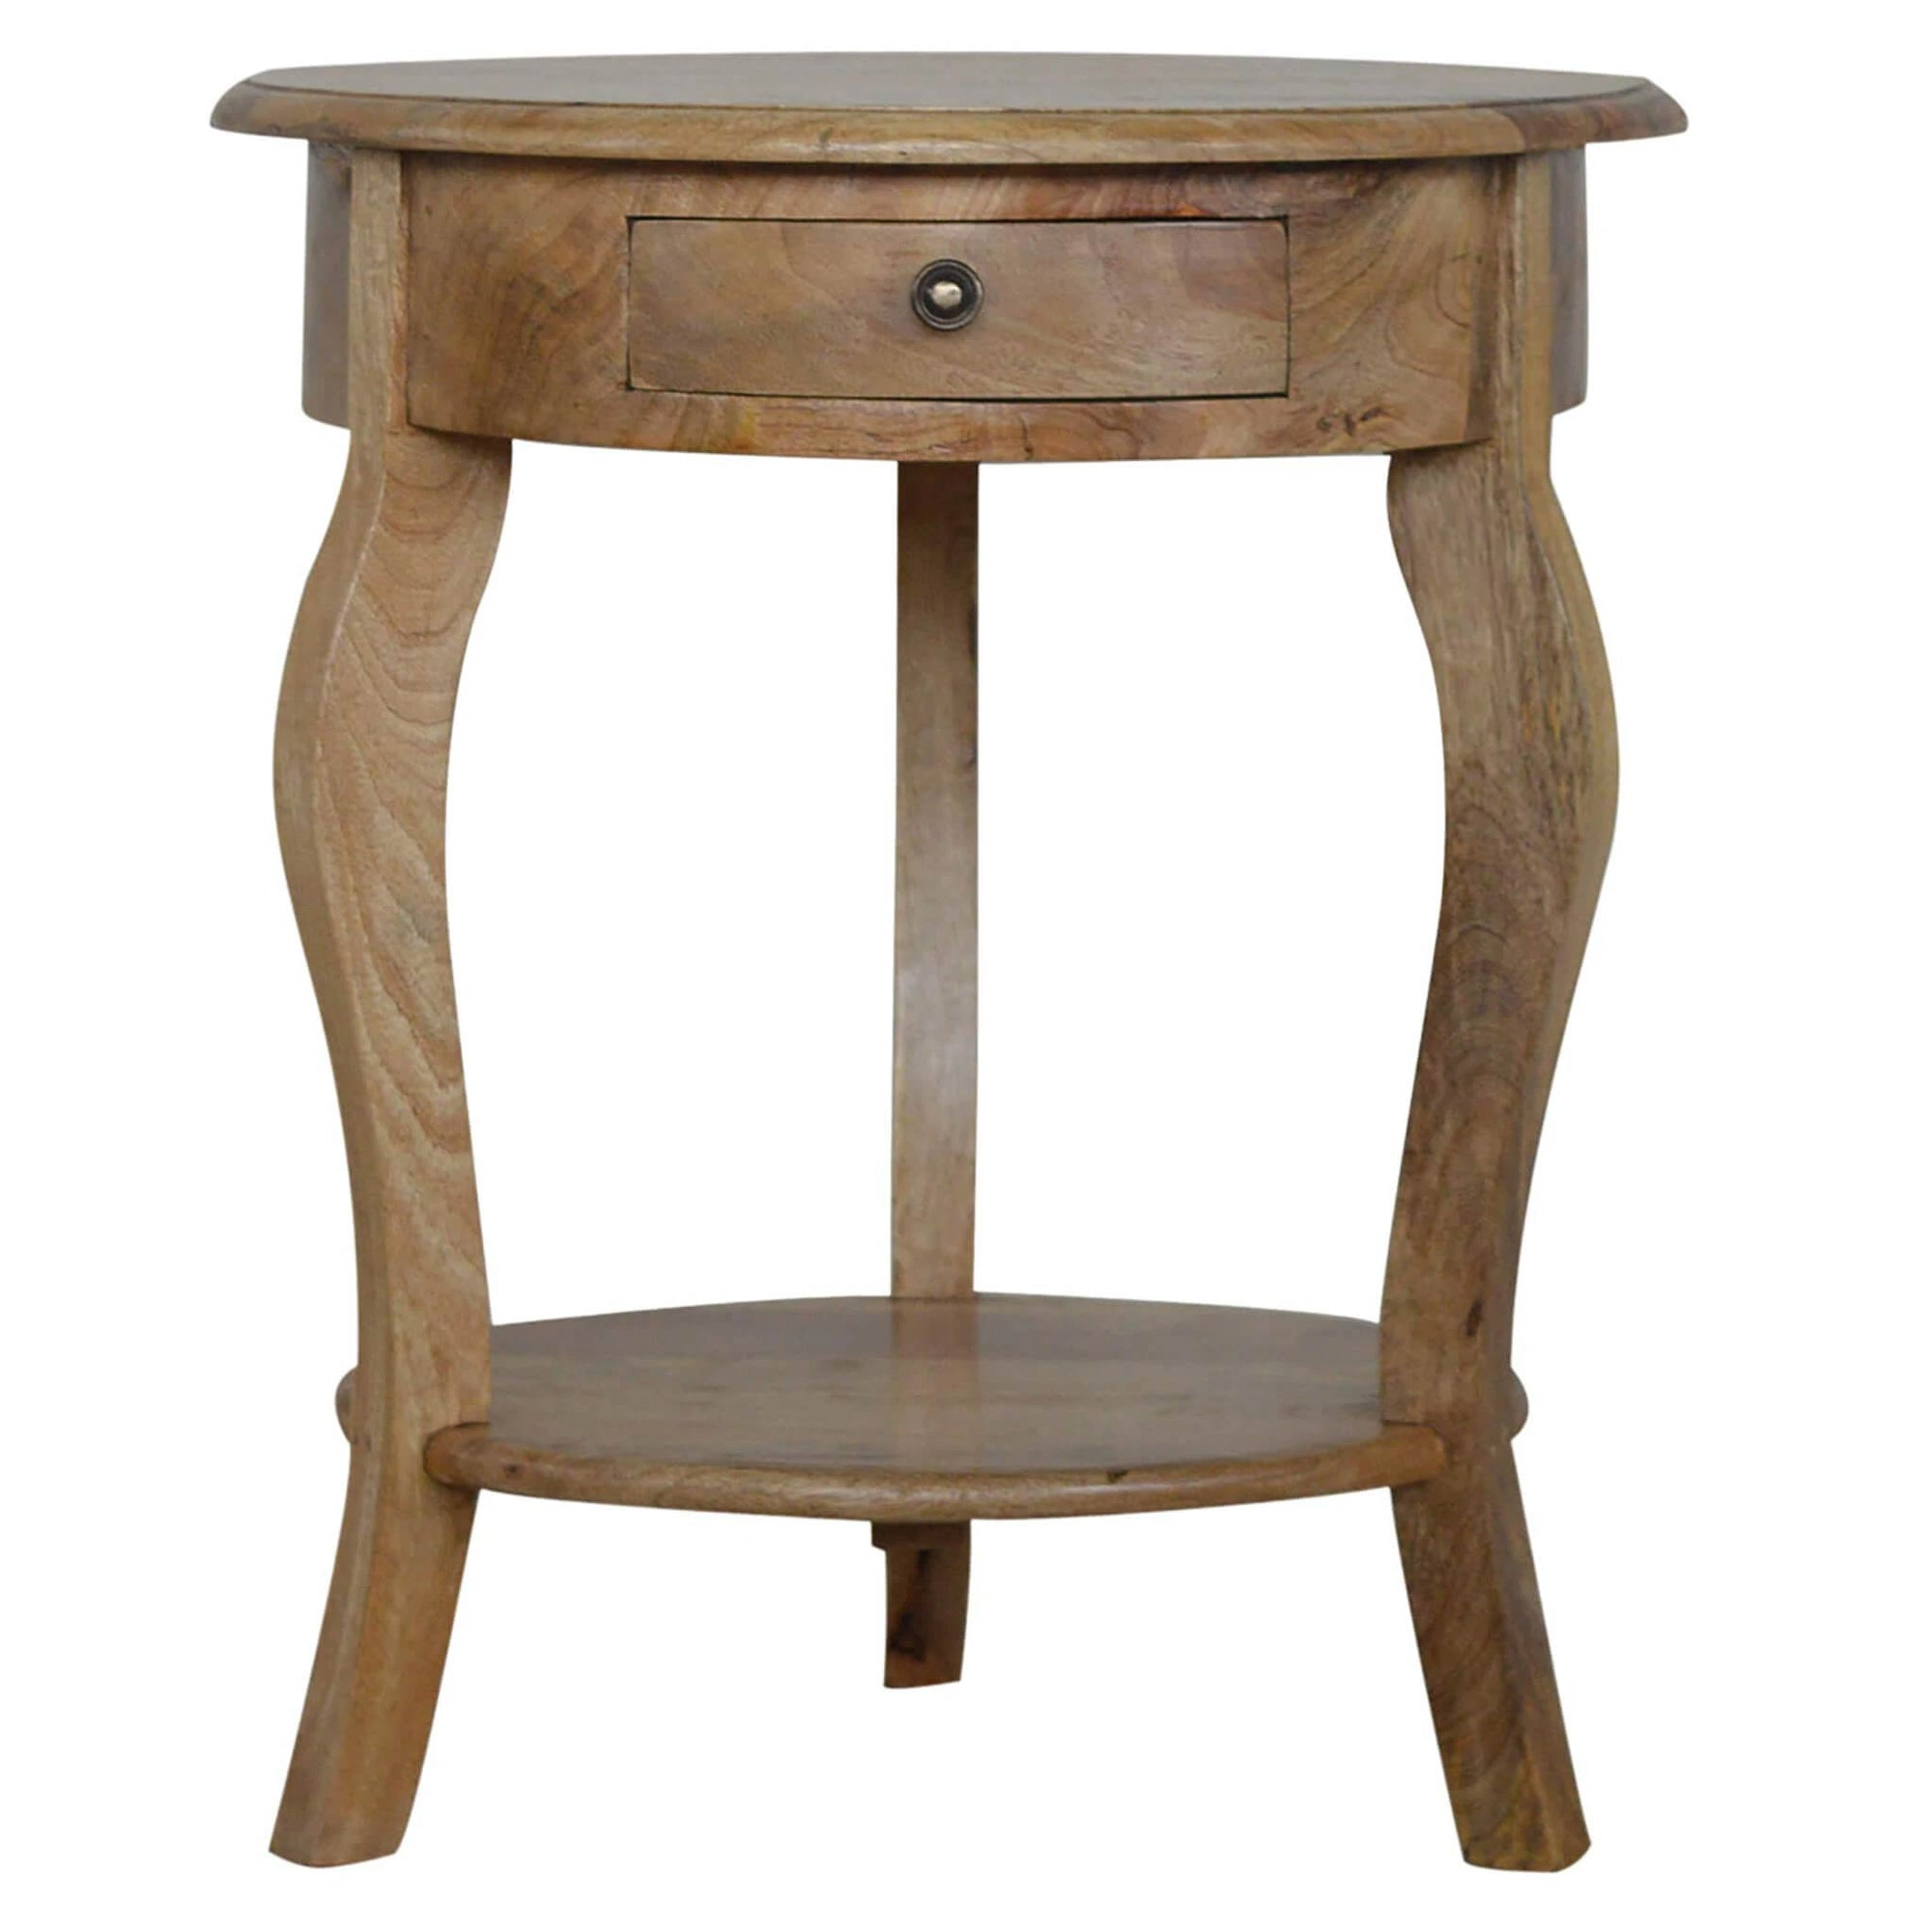 Artisan French Style Bedside Side Table with Drawer by Roseland Furniture